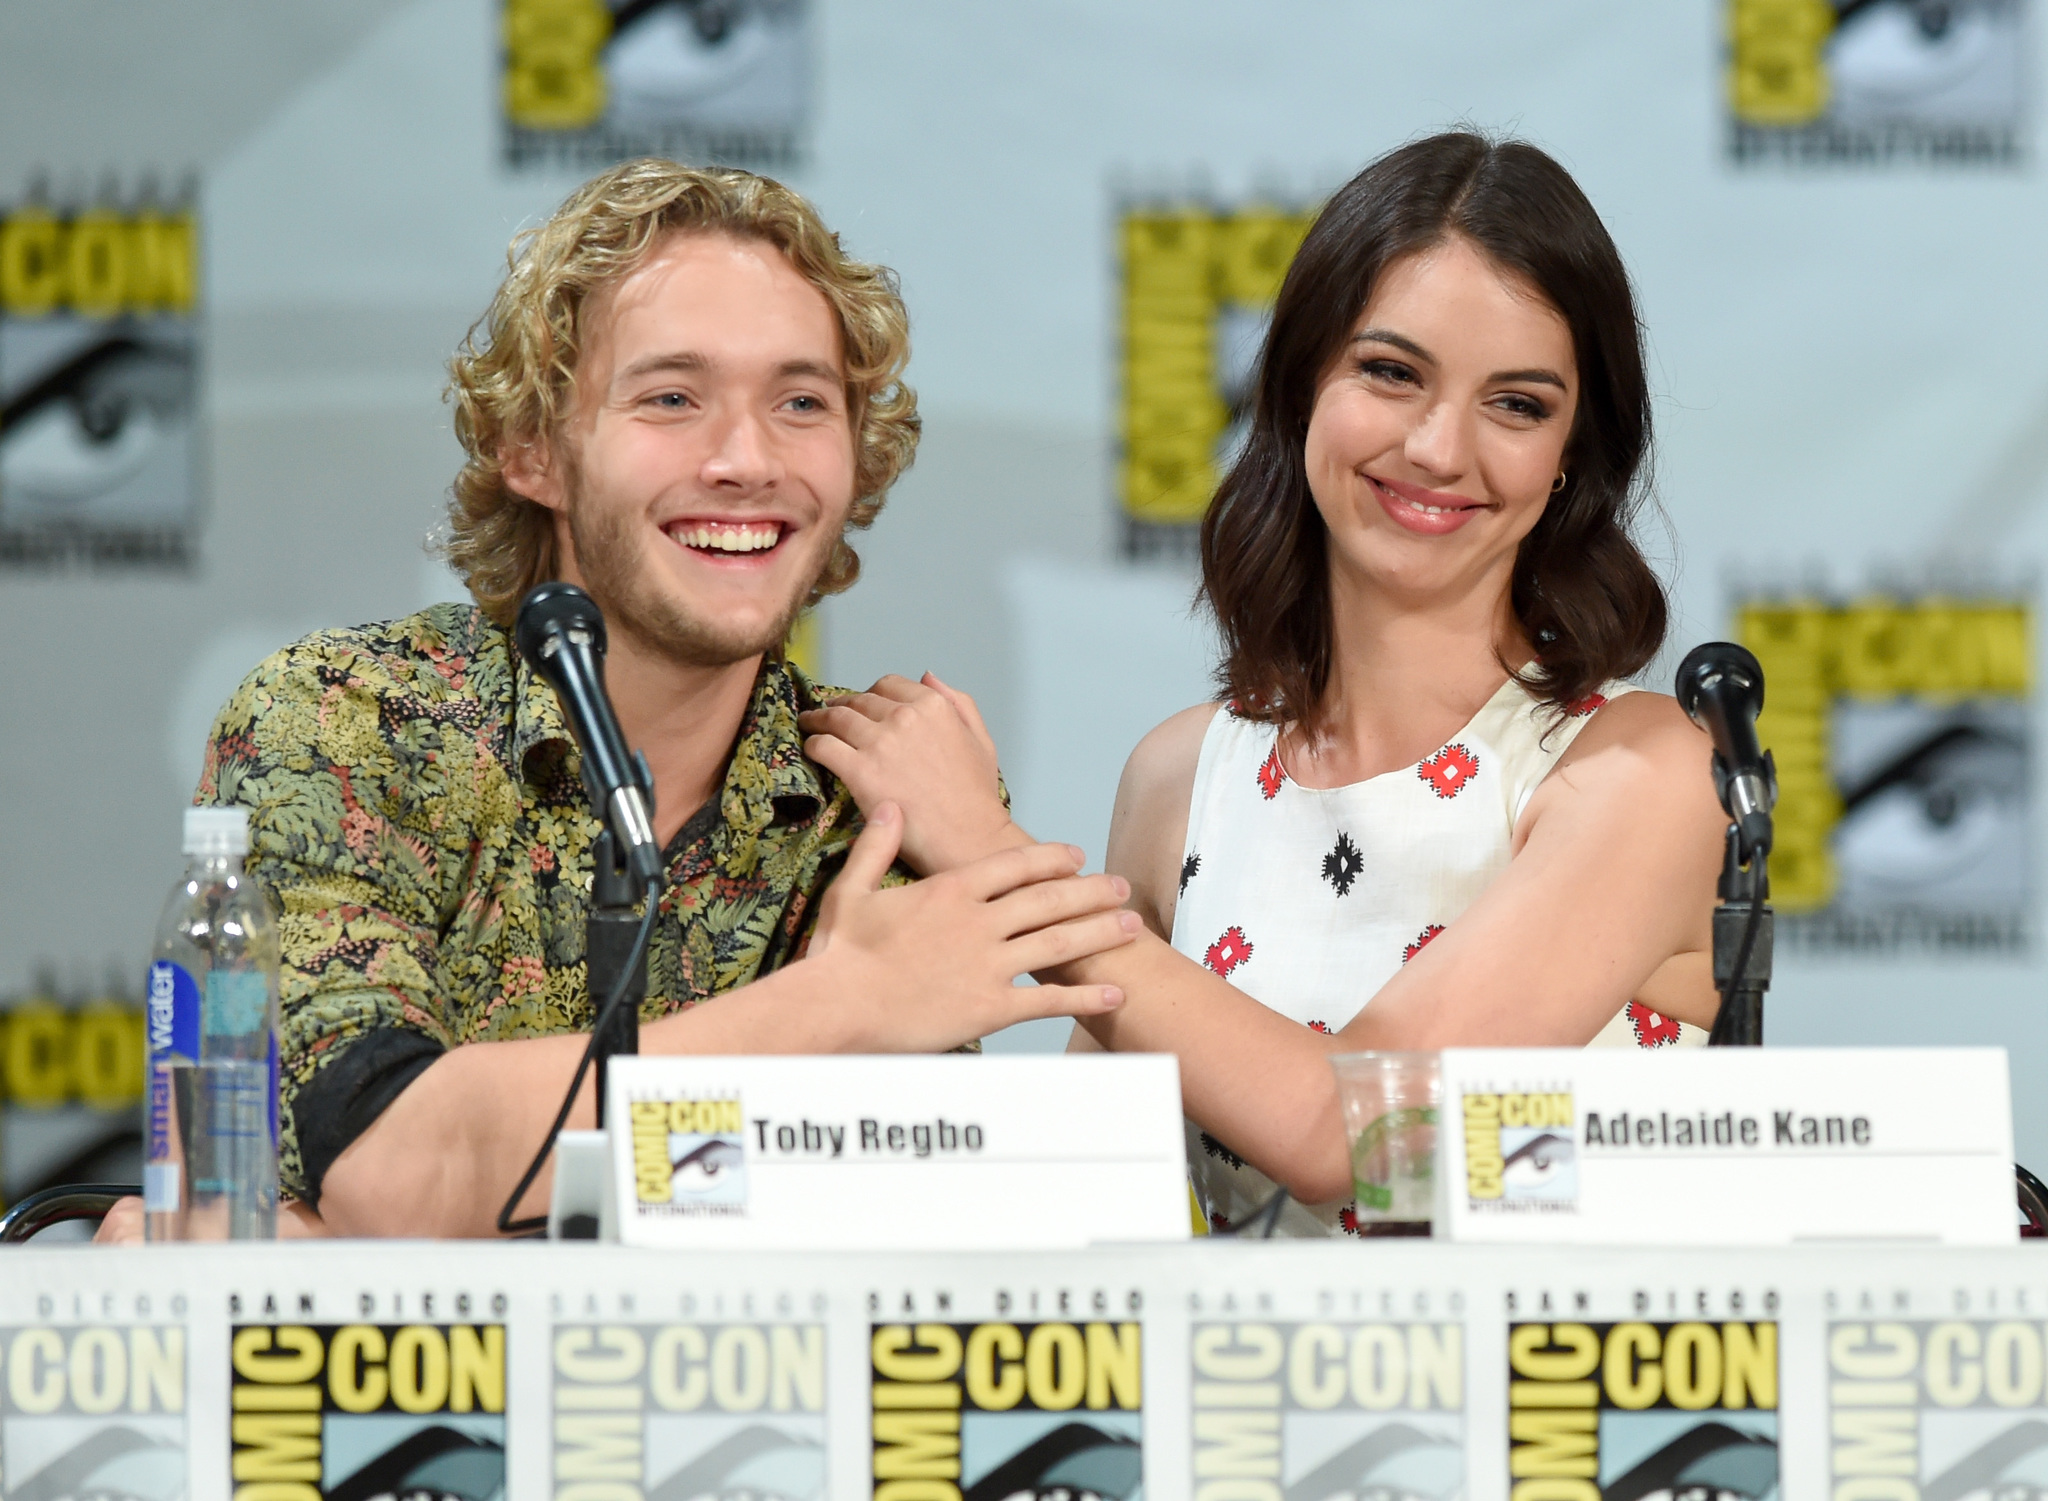 Toby Regbo and Adelaide Kane at an event for Reign (2013)